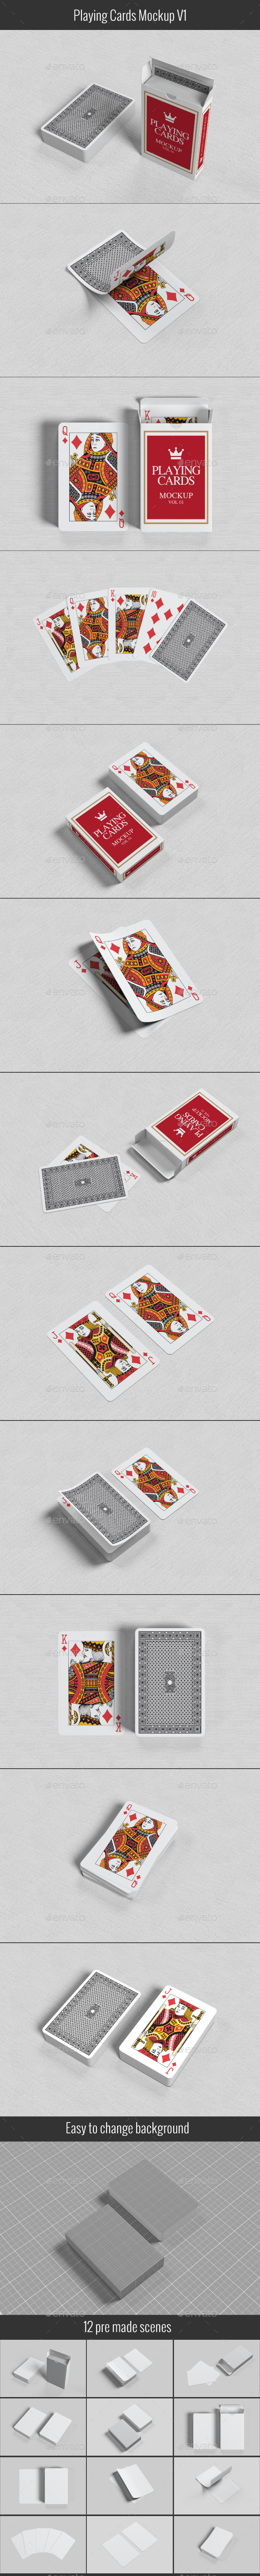 Playing Cards Mock-up V1 - Miscellaneous Print